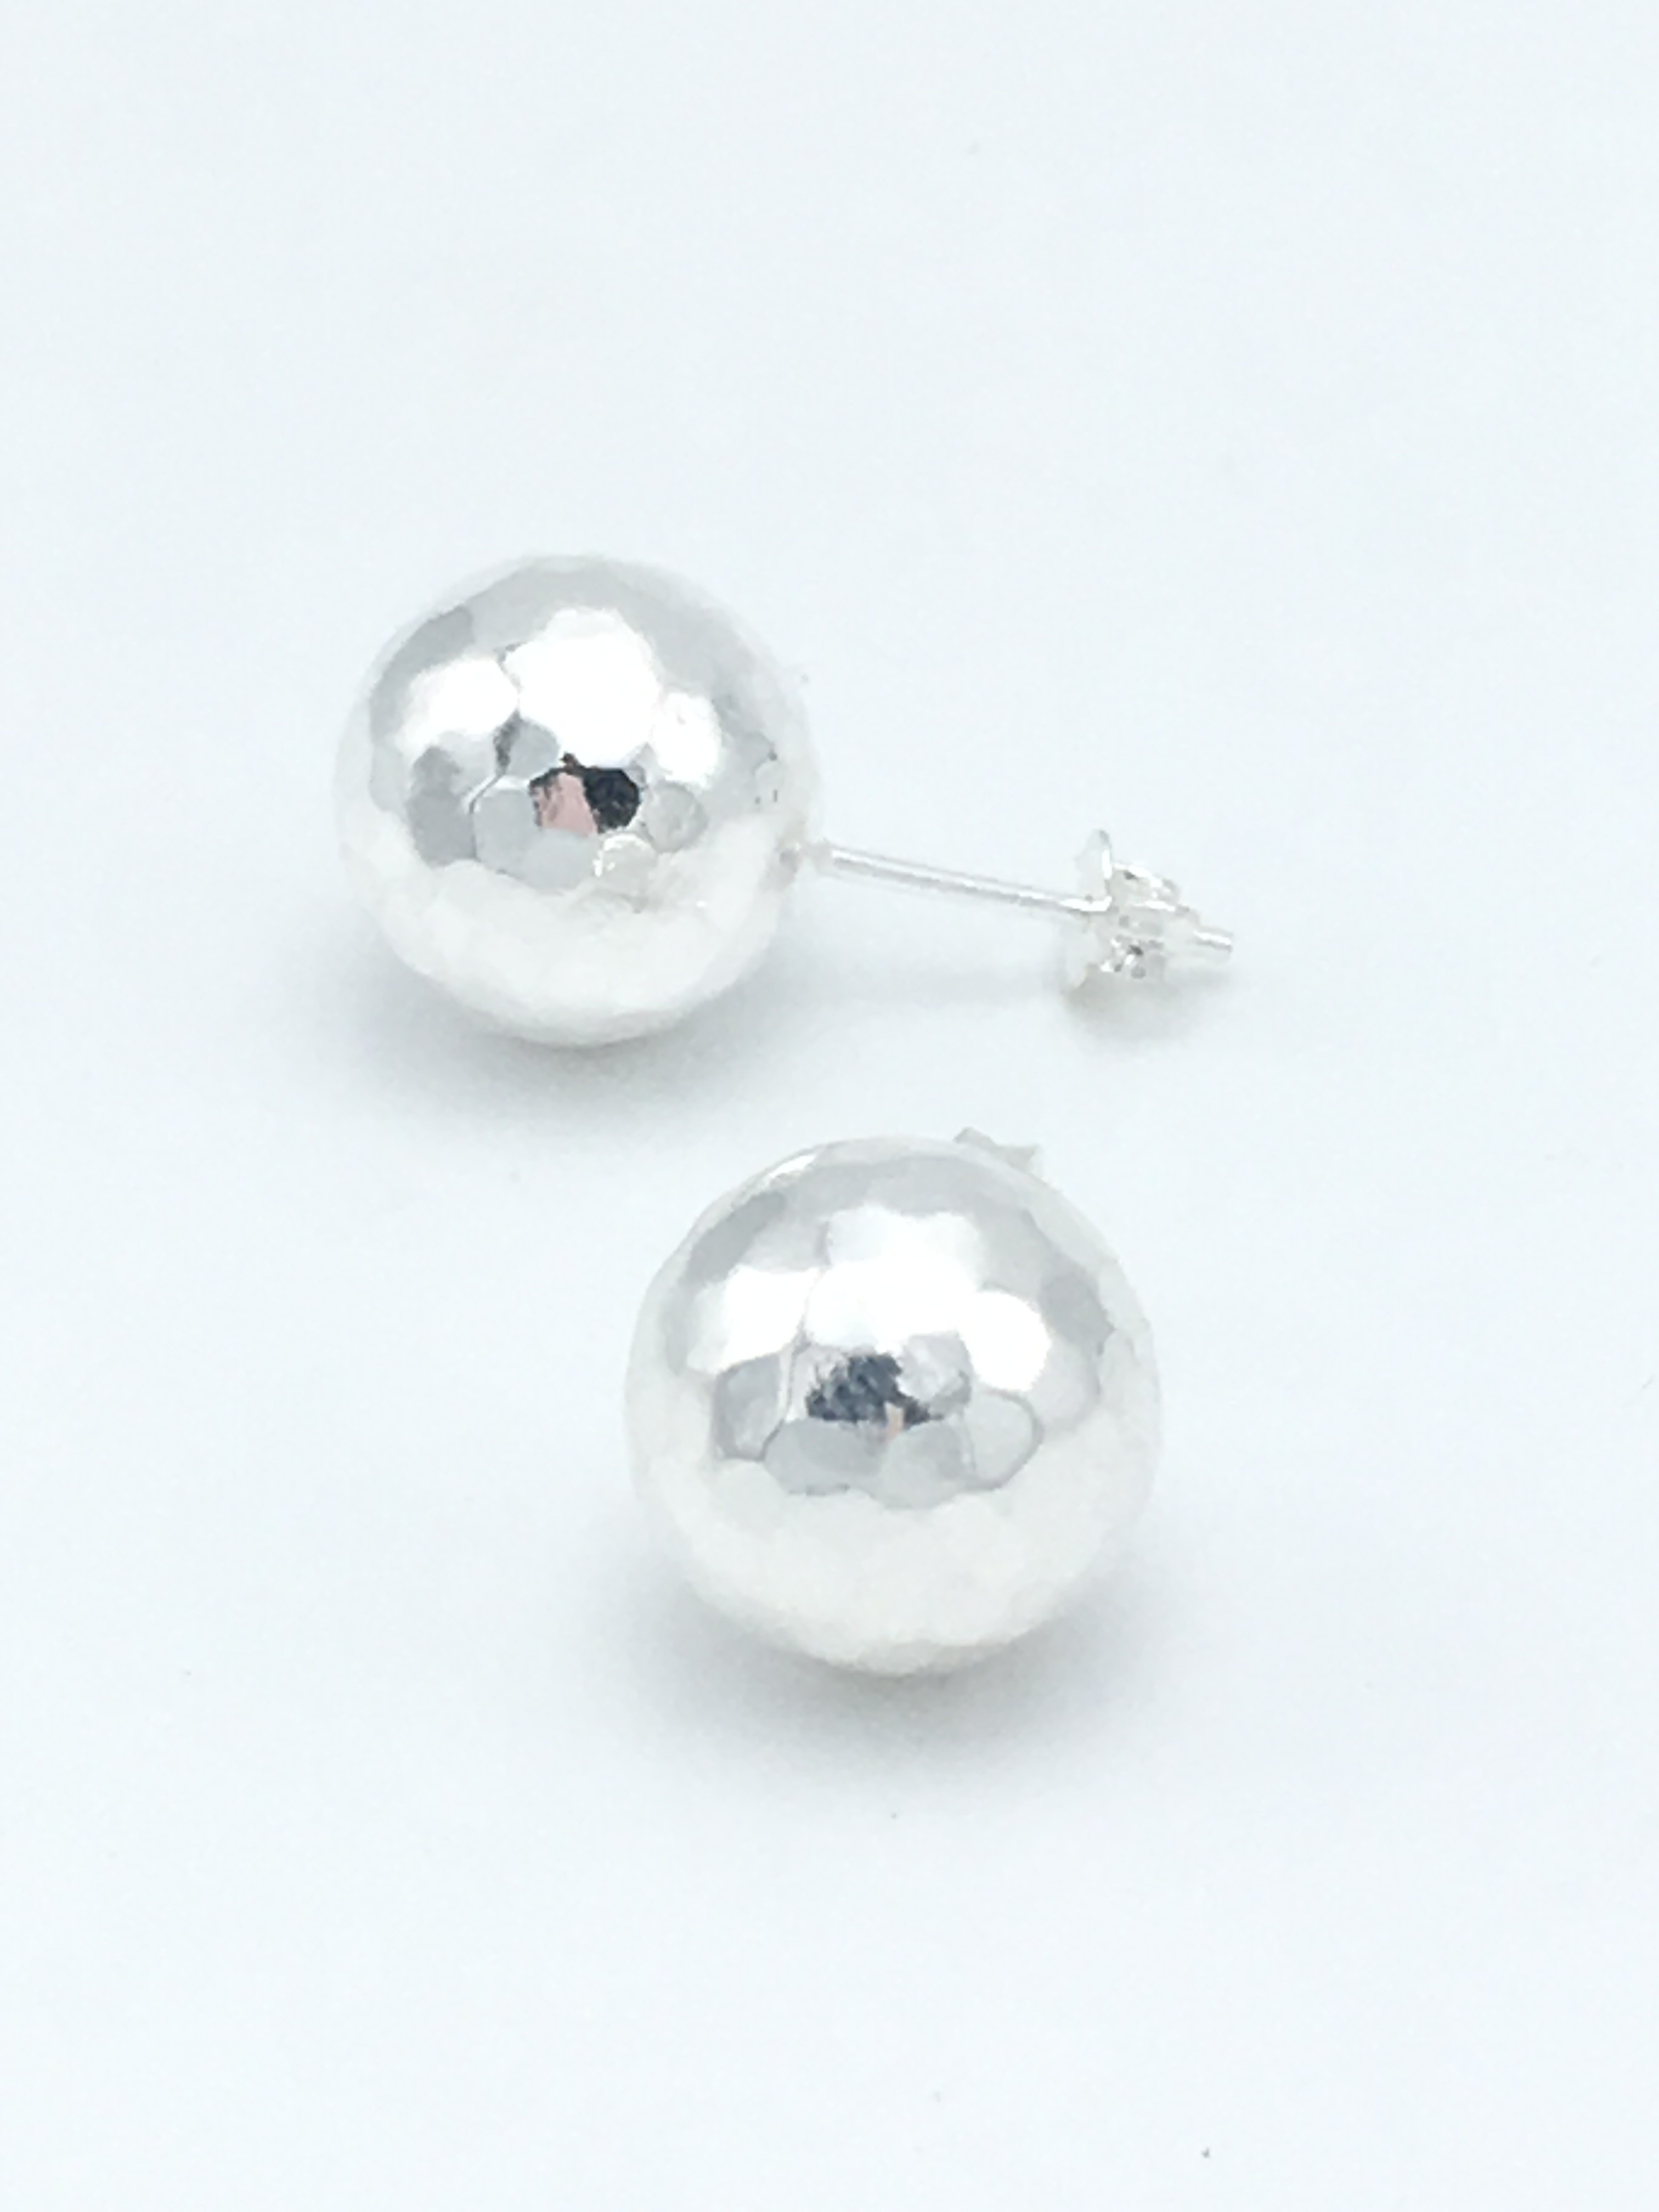 b89be06ac ... Silver Art Textured Ball Studs -8mm. Click for a larger view